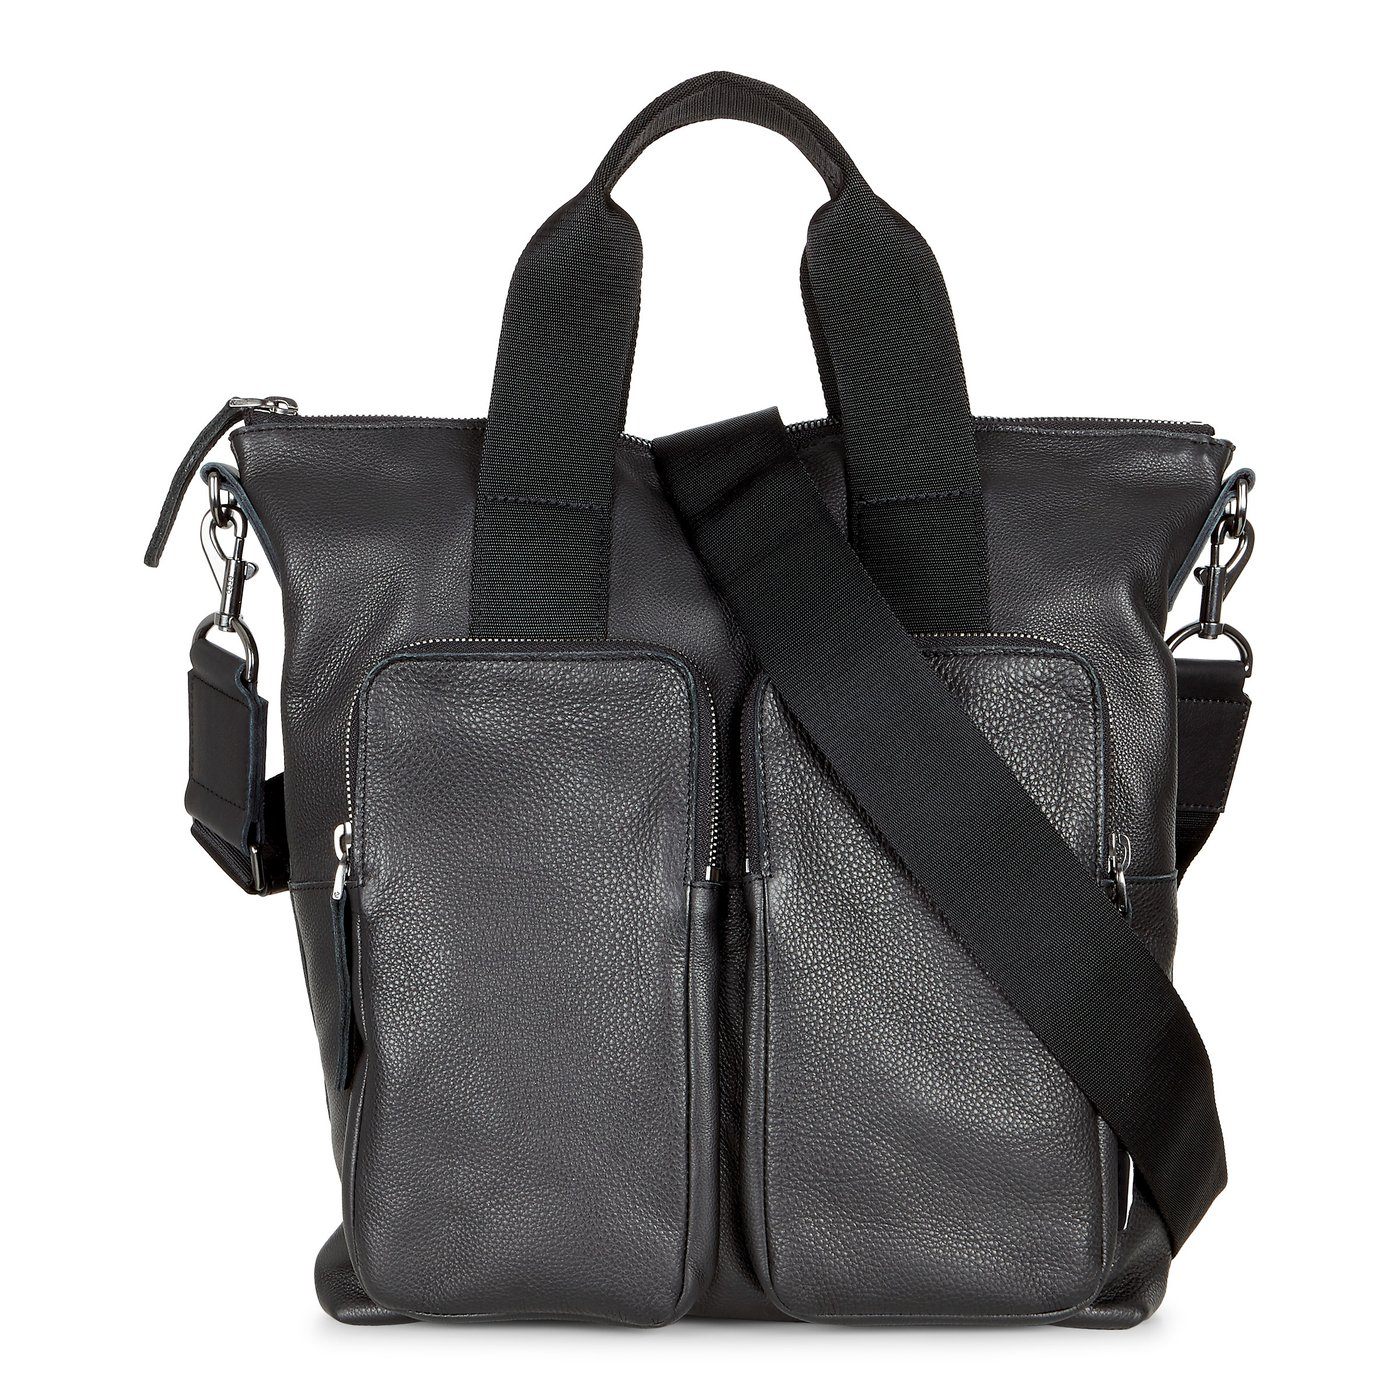 ECCO CASPER Small Tote Bag